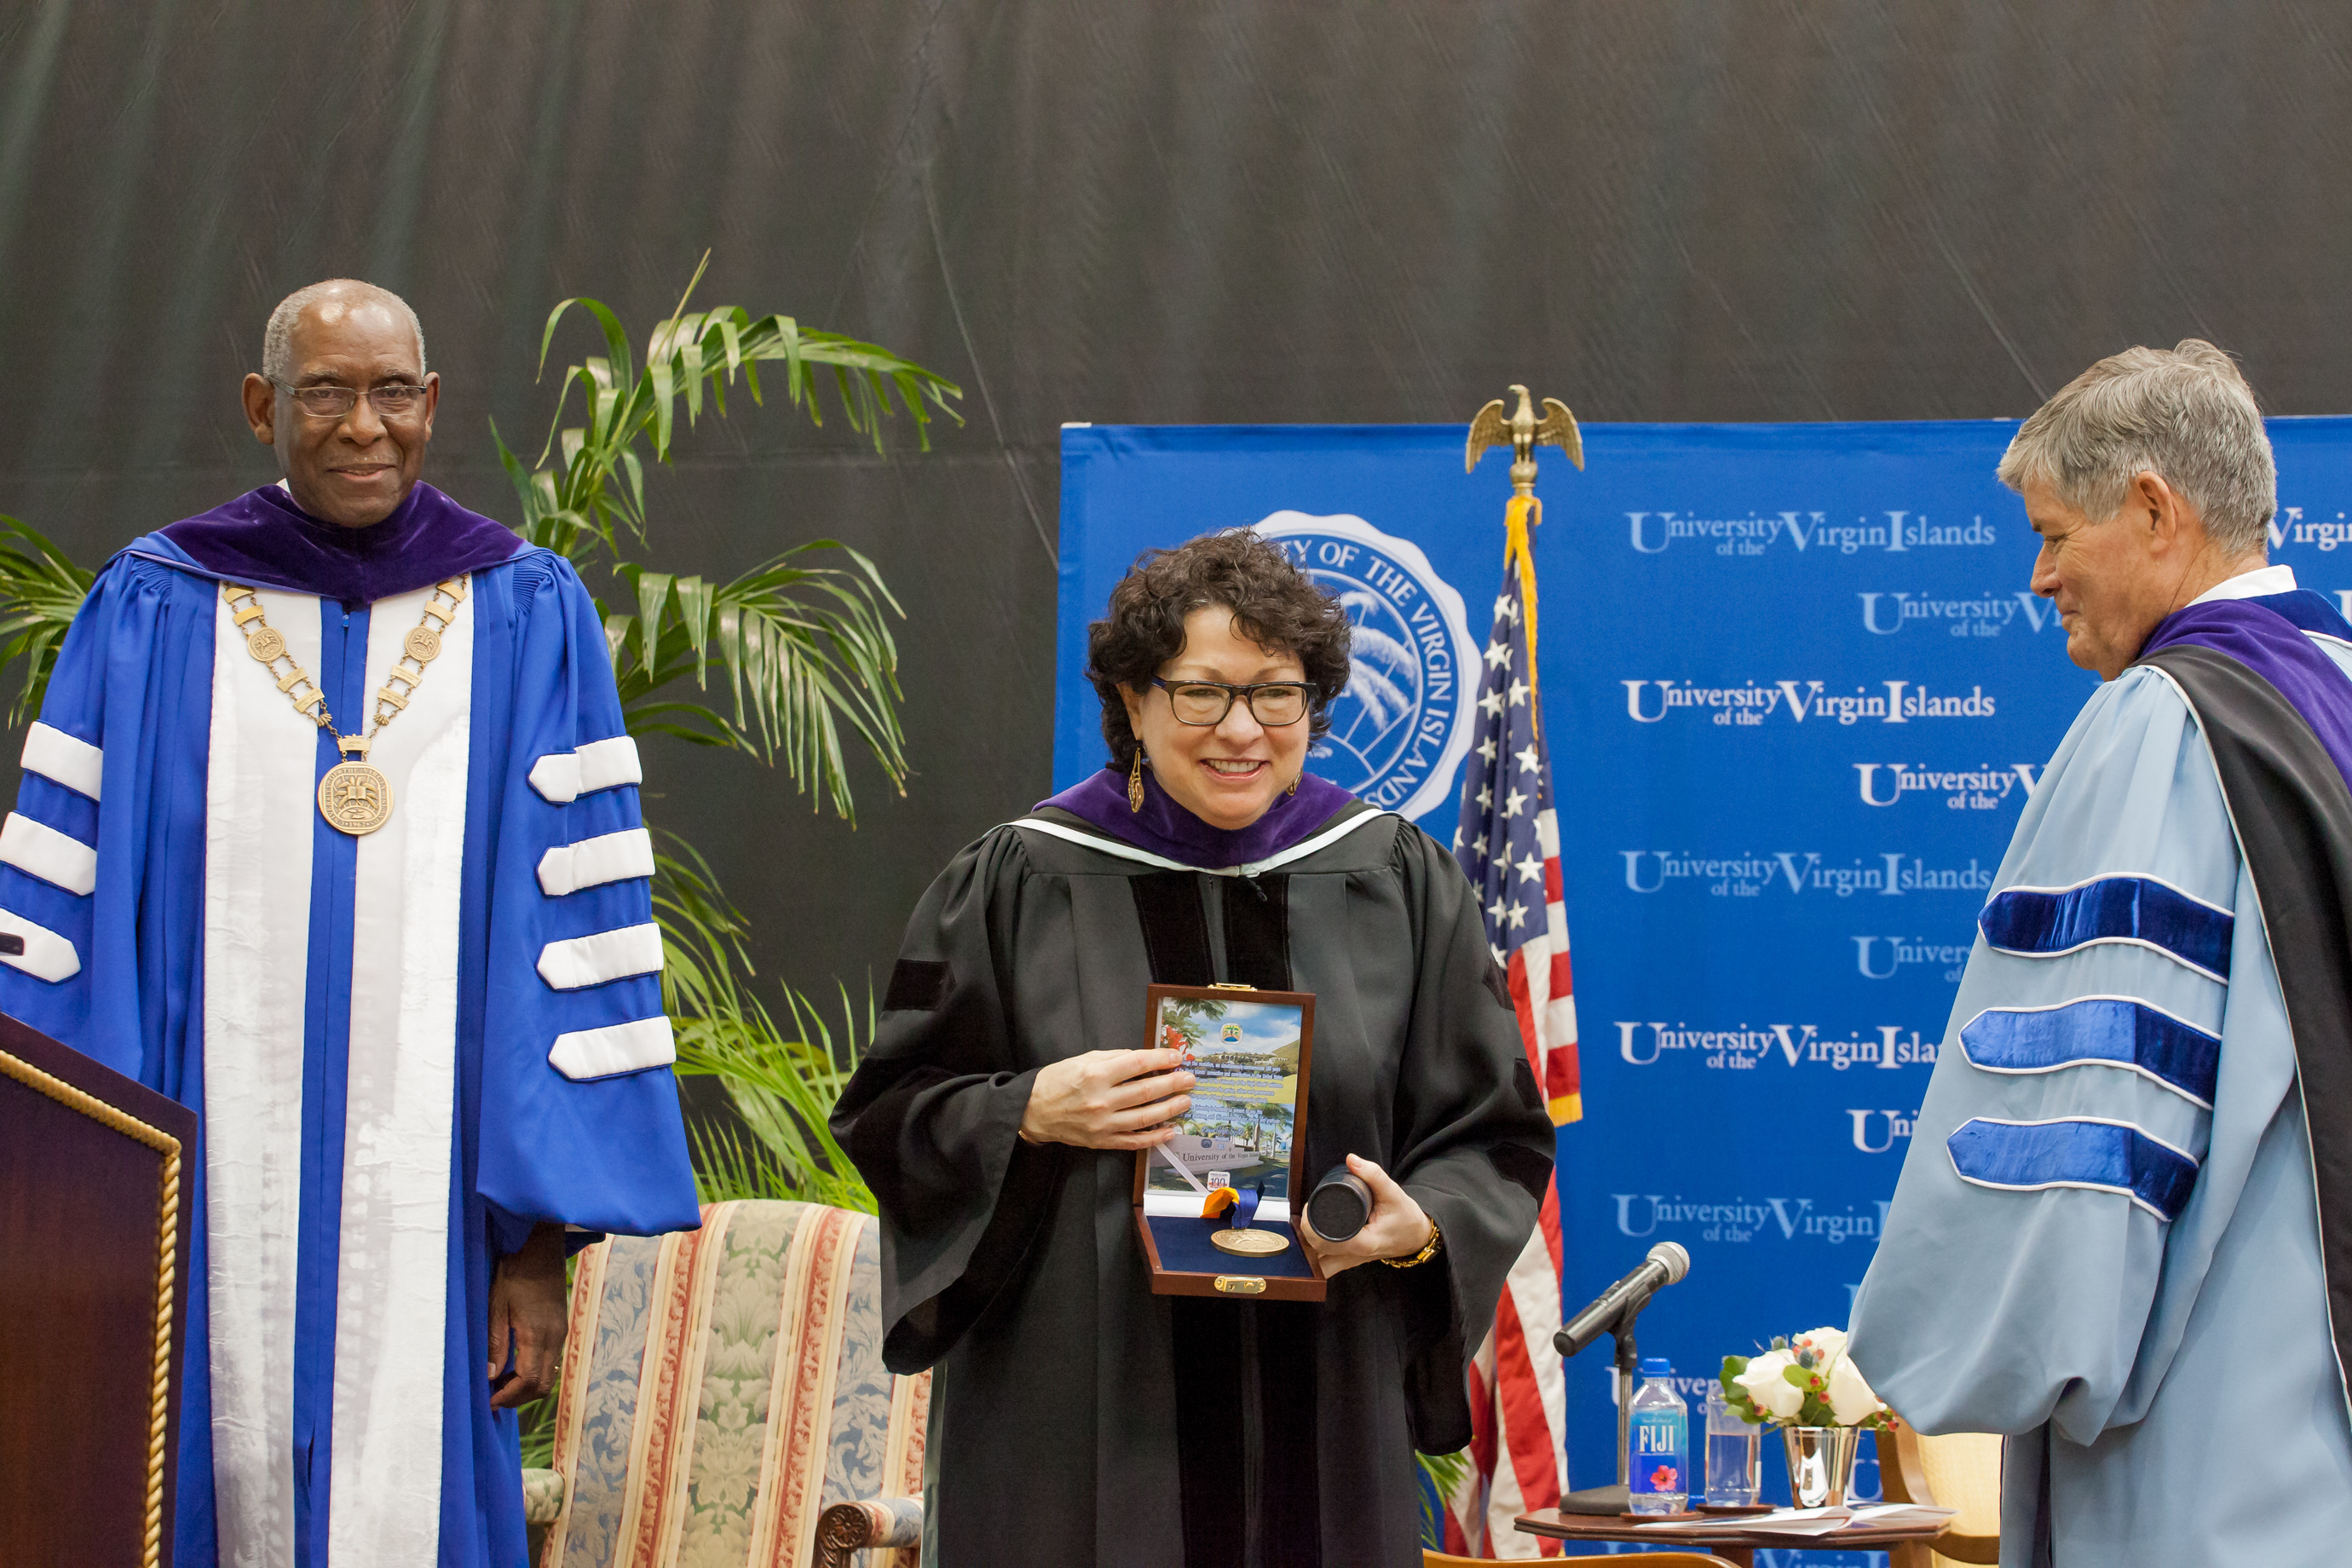 Justice Sotomayor accepts special UVI medallion